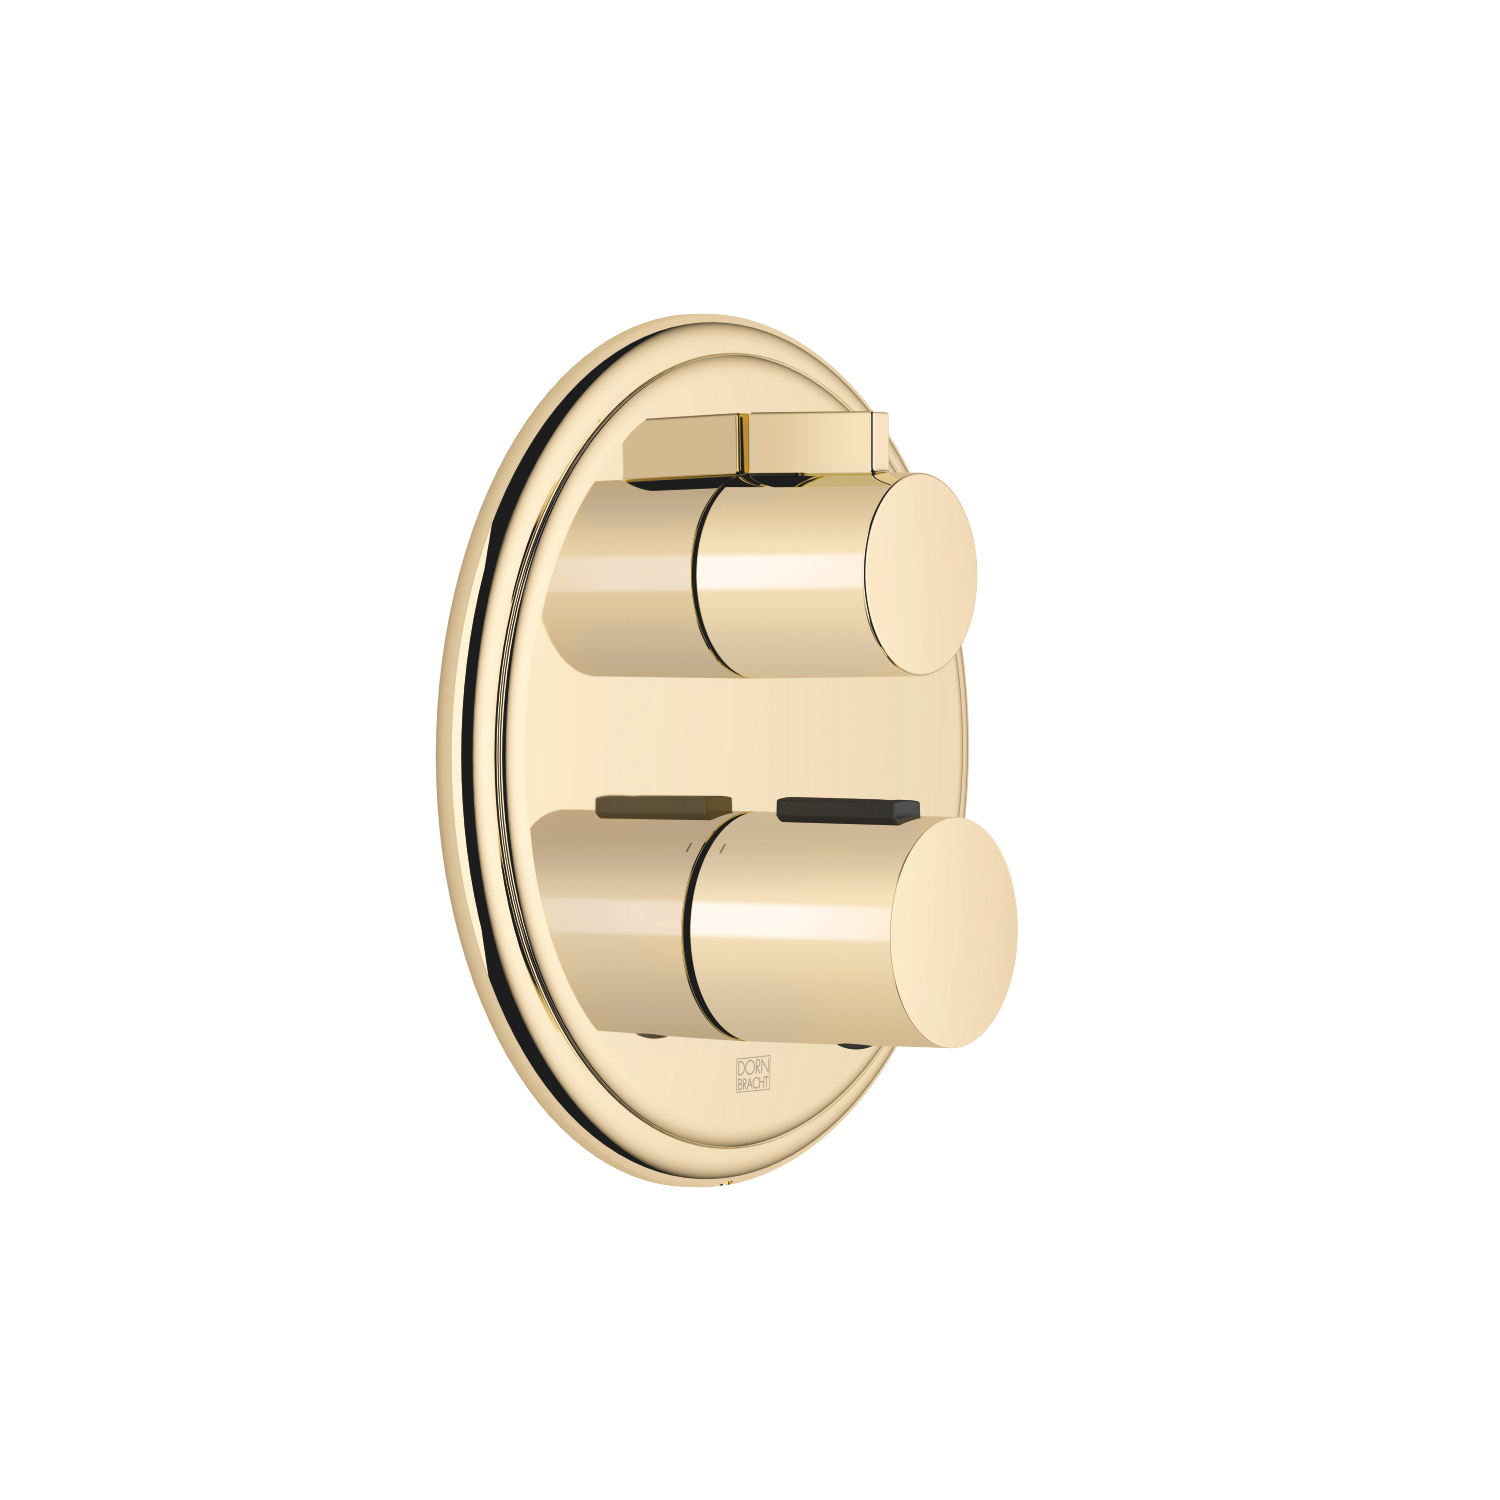 Concealed thermostat with one-way volume control - Durabrass